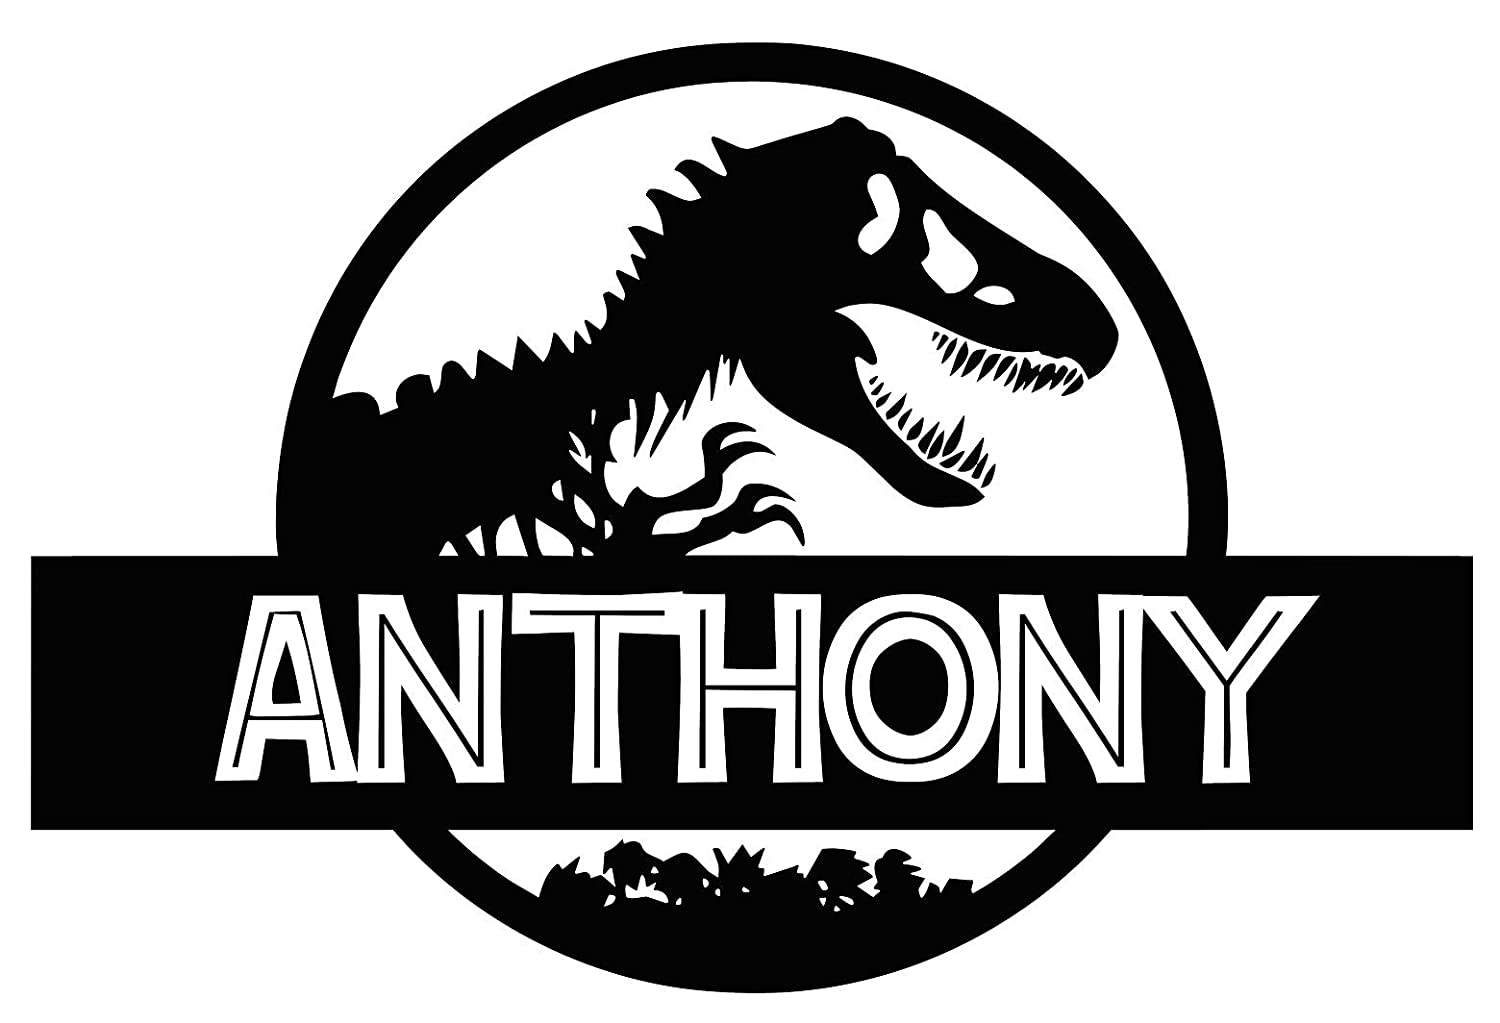 Custom name jurassic era logo wall decal personalized decal tyrannosaur vinyl sticker dinosaur t rex wall art design housewares kids room bedroom decor